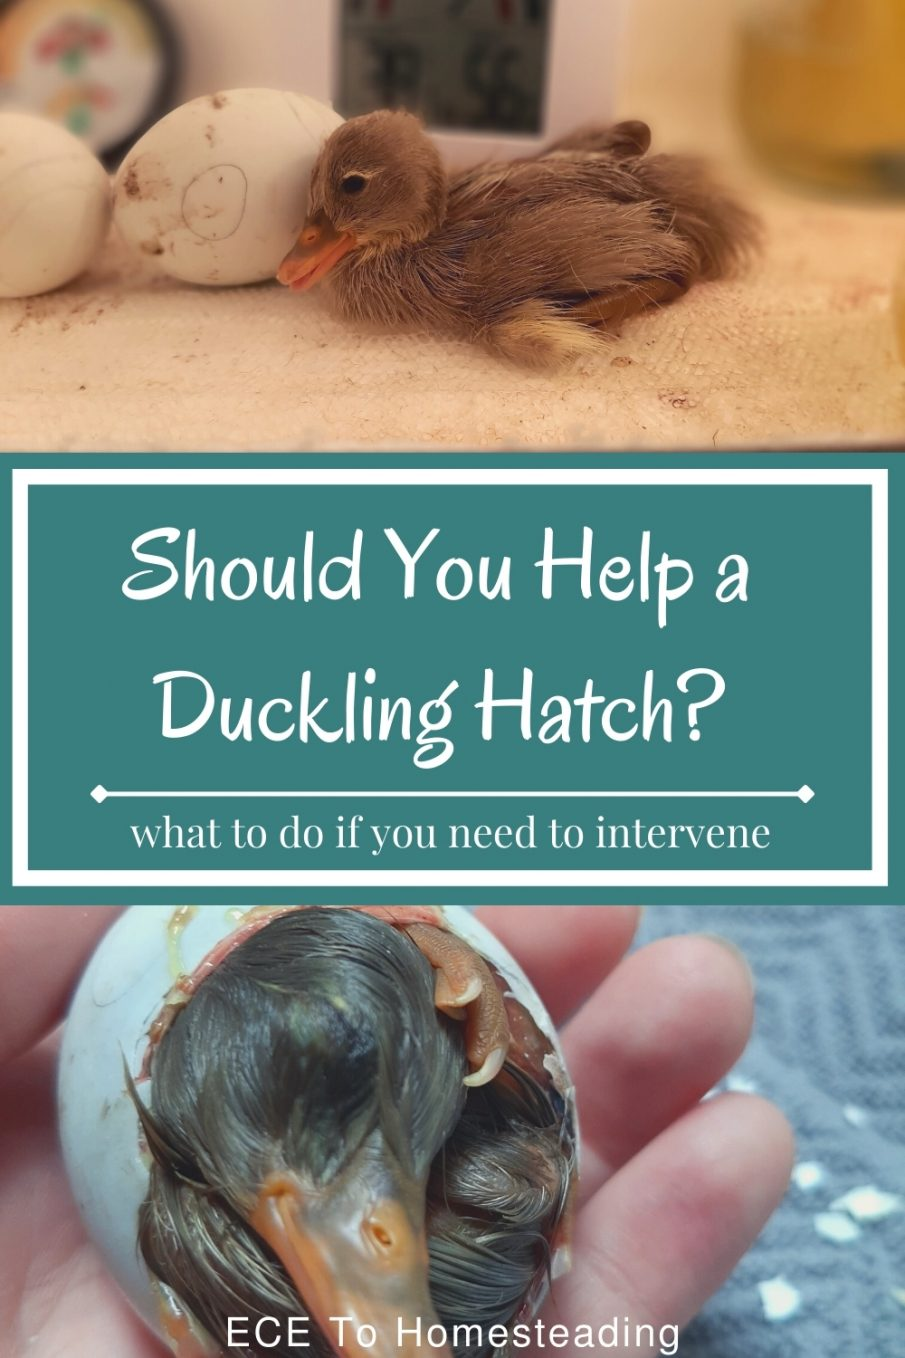 should you help ducklings hatch